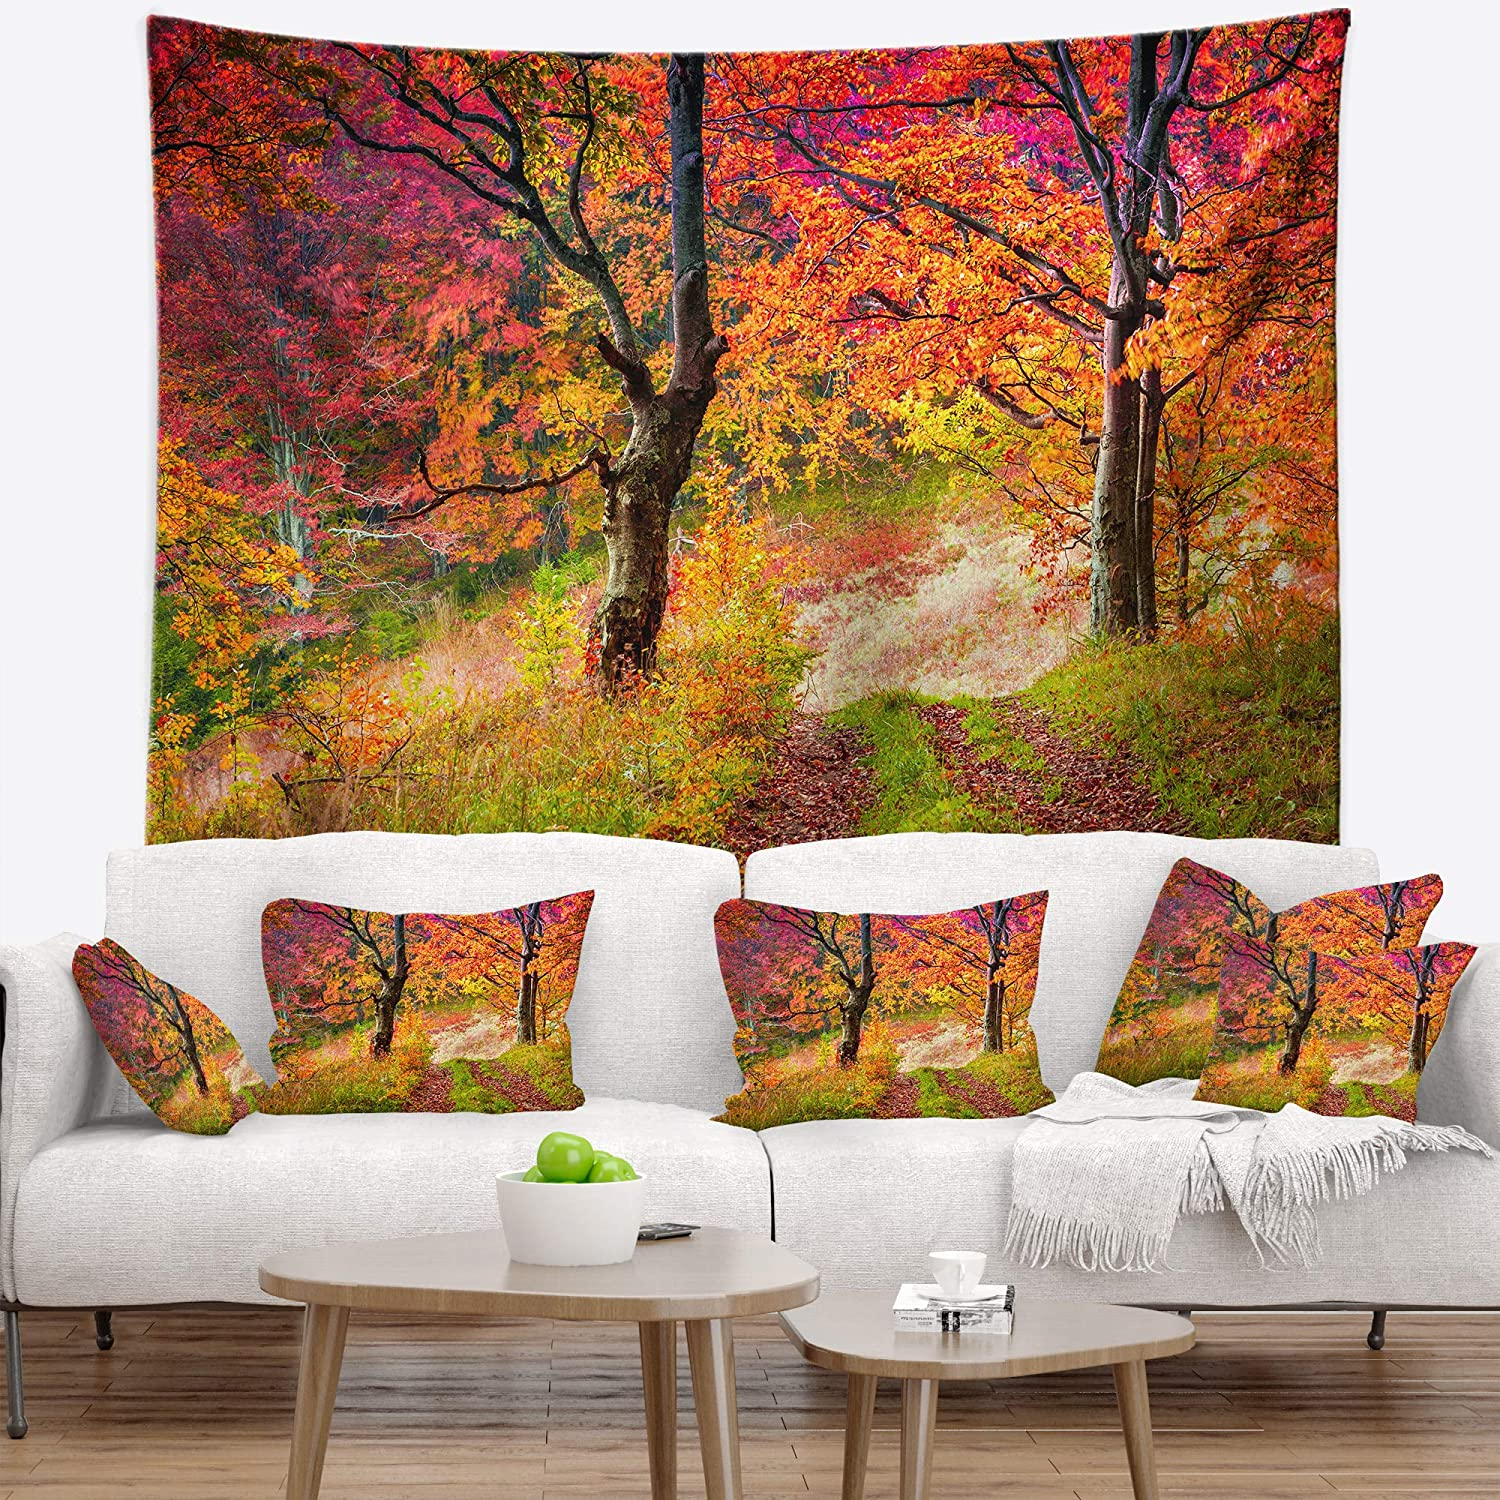 39 in x 32 in Created On Lightweight Polyester Fabric Designart TAP14602-39-32  Bright Colorful Fall Trees in Forest Landscape Blanket D/écor Art for Home and Office Wall Tapestry Medium